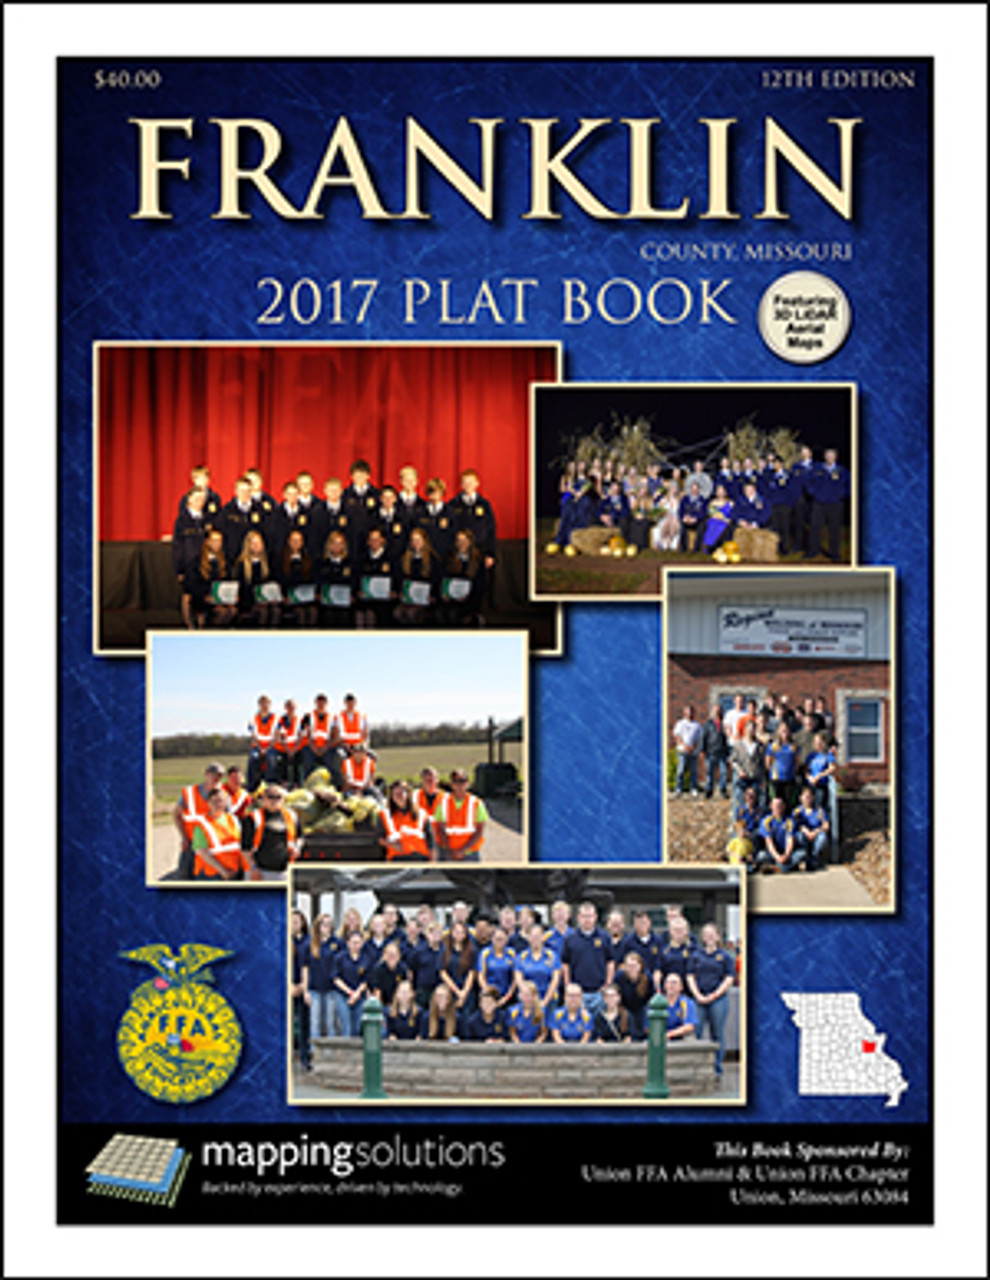 Franklin County Missouri 2017 Plat Book on data performance, data monitoring, data icon, data funnel, data medical, data education, data assessment, data network, data elements example, data analyst, data environment, data validation, data testing, data engineering, data recording, data evaluation, data books, data maintenance, data cleanup, data development,